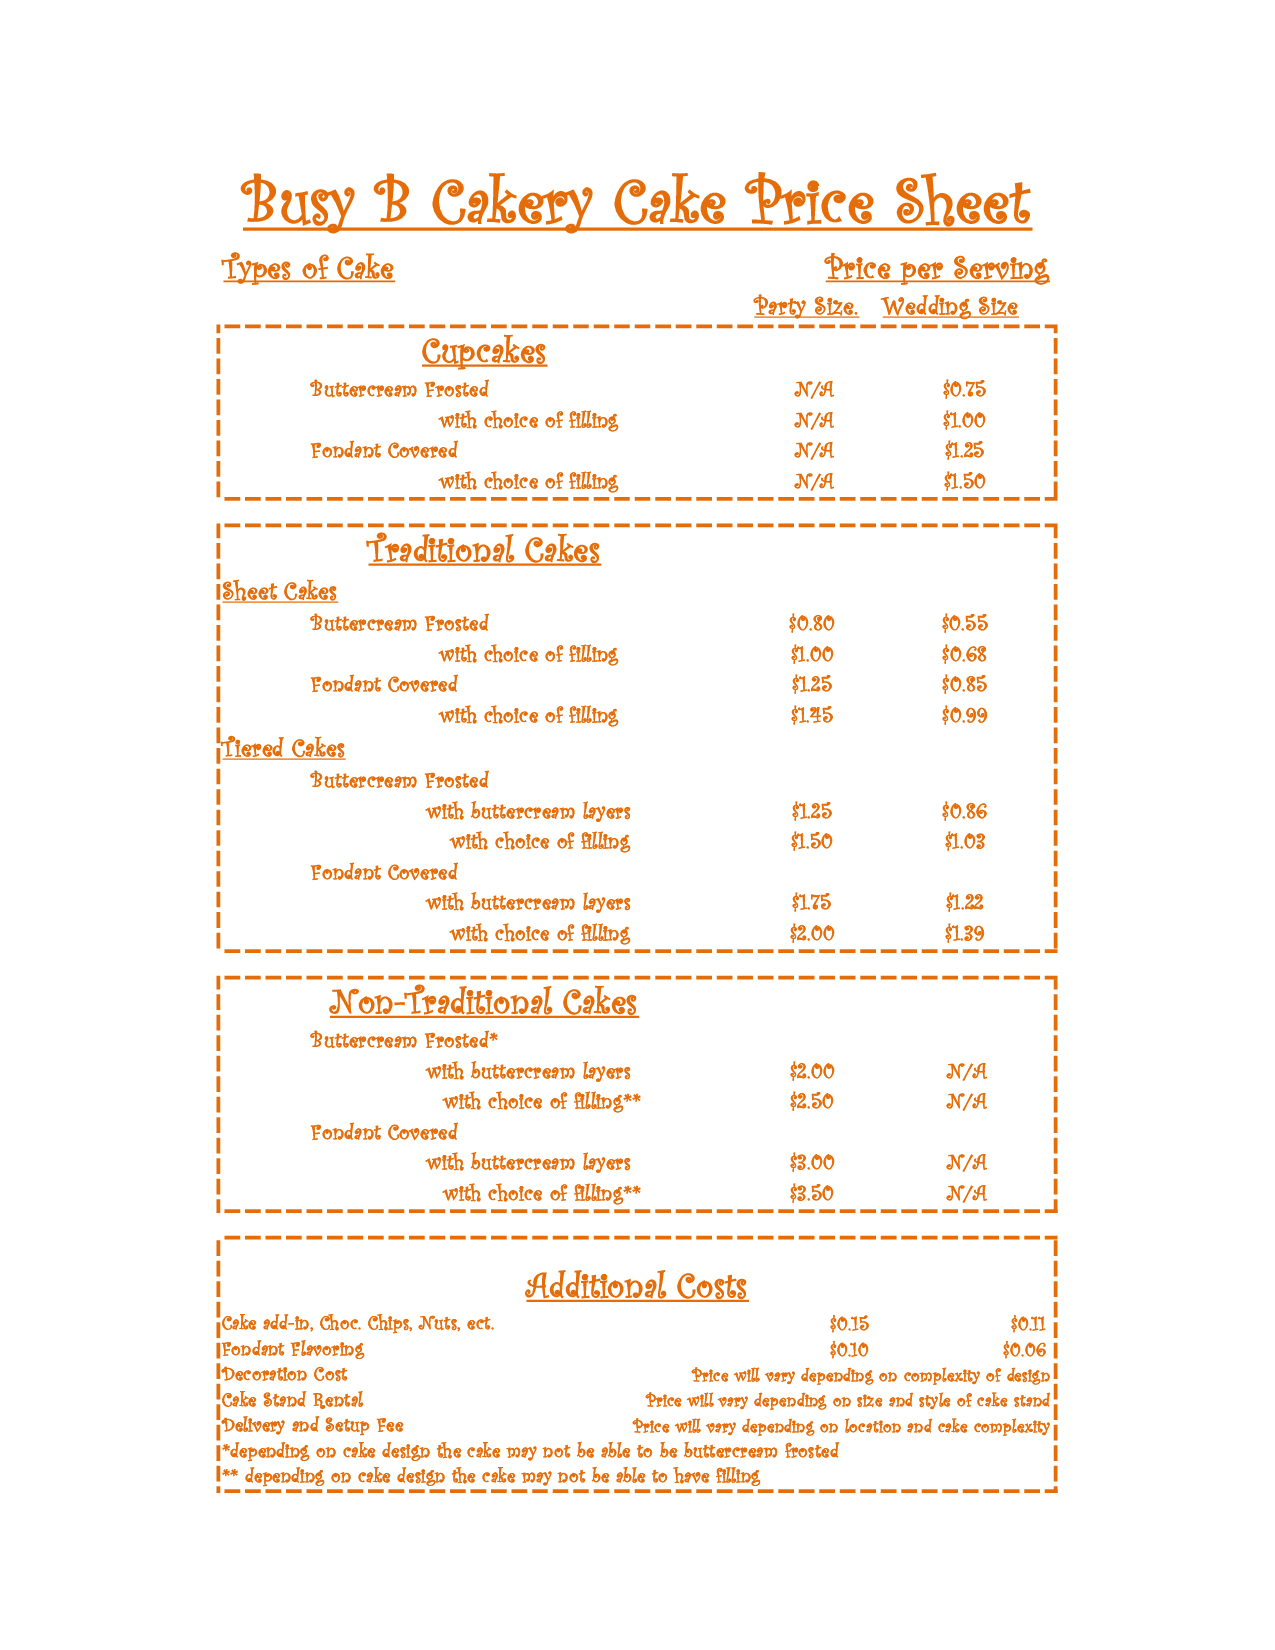 Cake Pricing Guide Busy B Cakery Cake Price Sheet Future